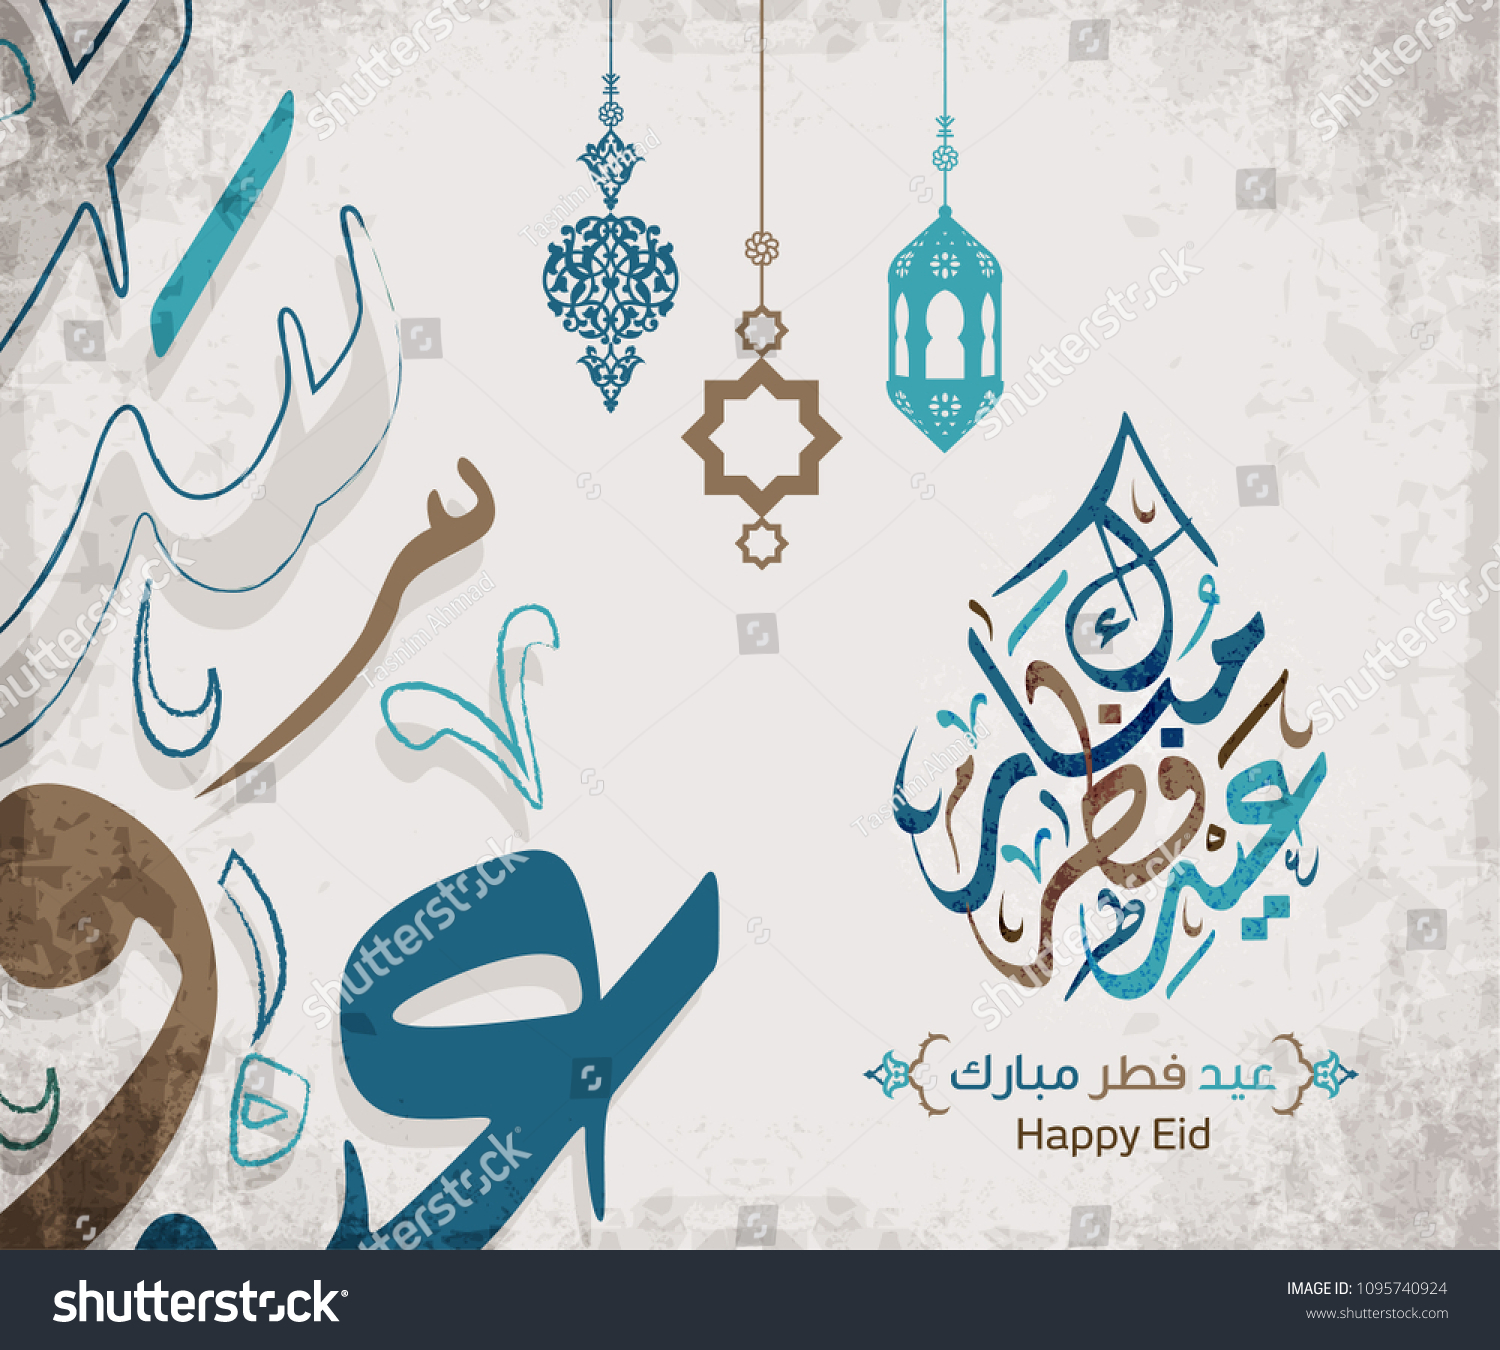 Arabic Islamic calligraphy of text Happy Eid, you can use it for islamic occasions like Eid Ul Fitr 21 #1095740924